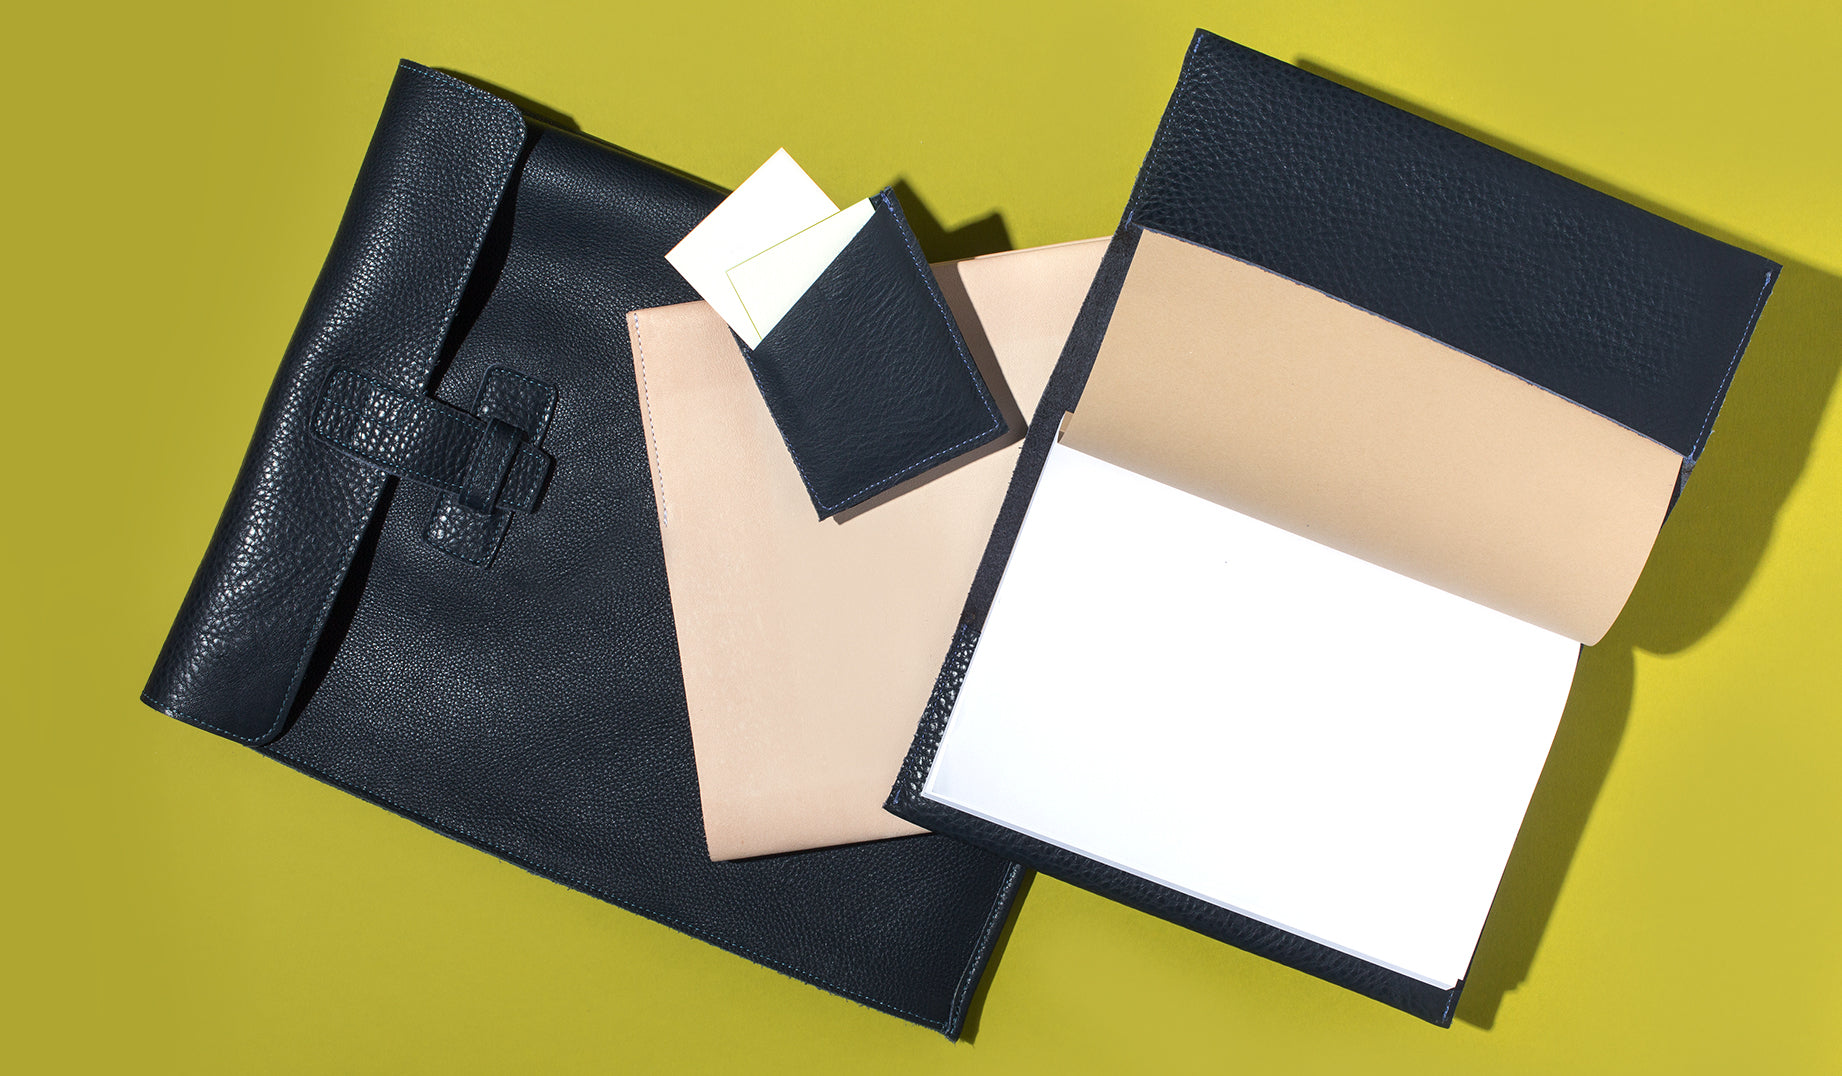 Supple materials and hand-stitched finishes make Agnes Baddoo's leather goods the perfect way to transport your print materials. Choose from three styles; folios, notebooks, or business card holders. All handmade in LA.